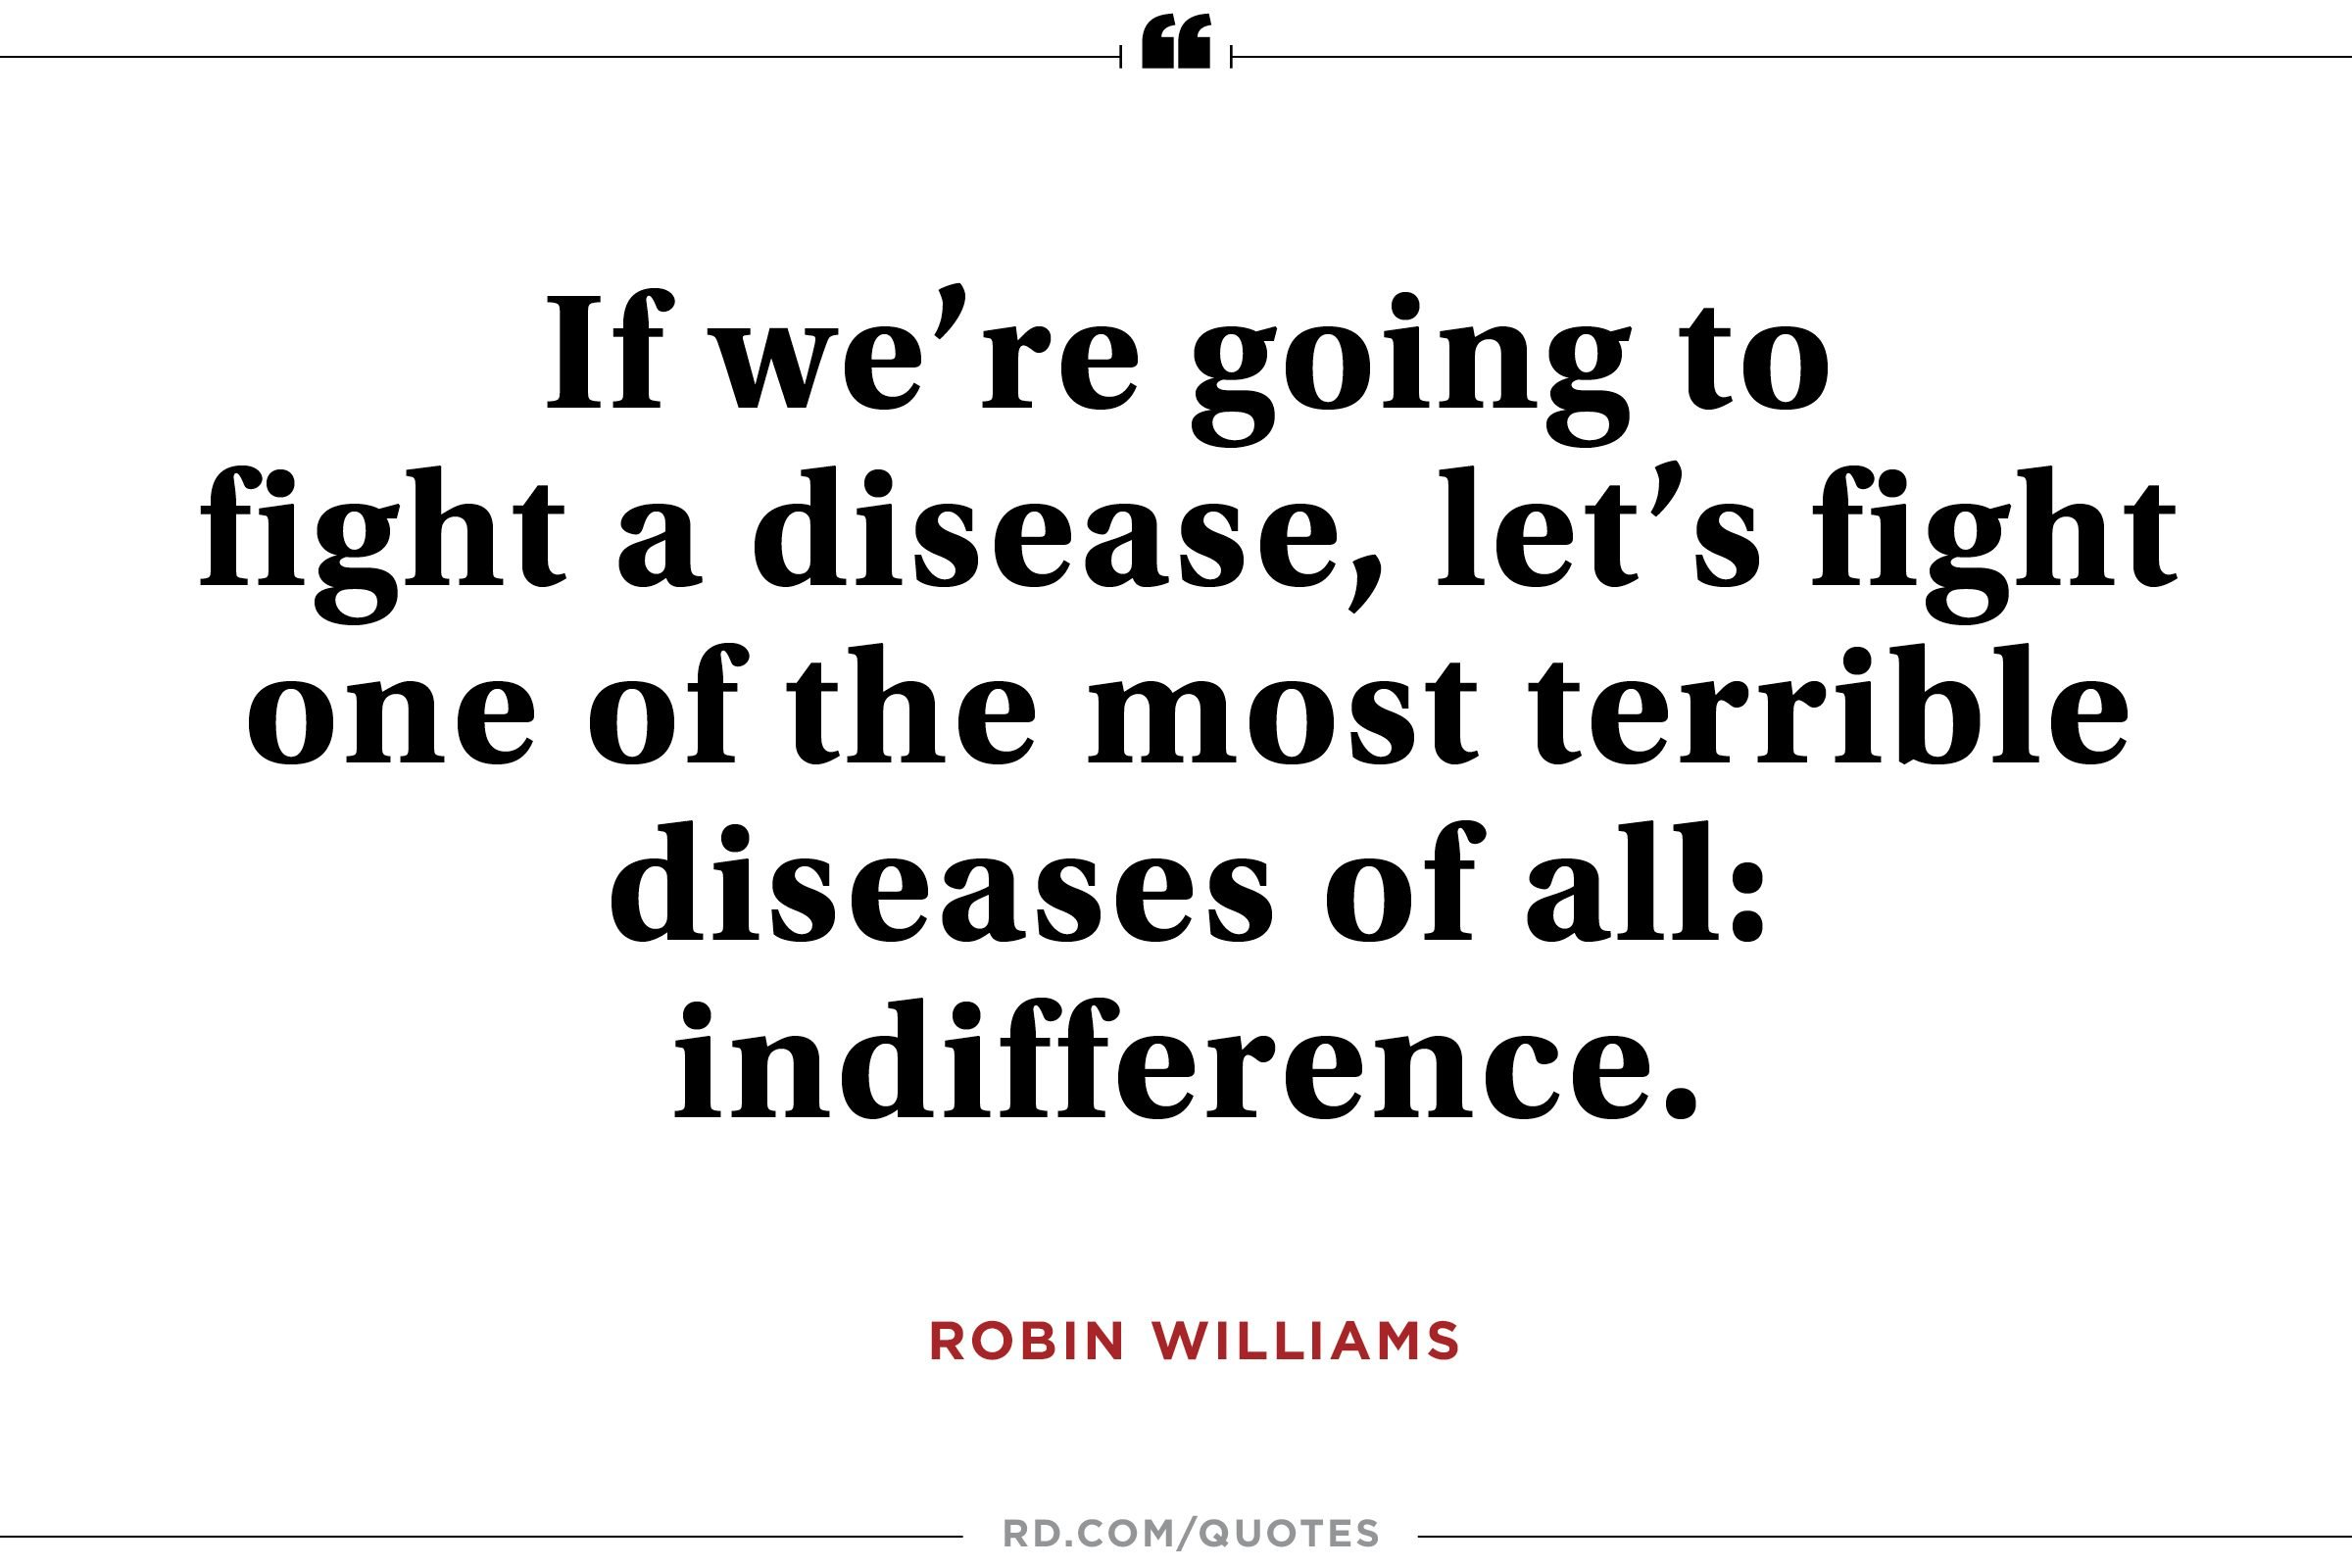 Indifference Quotes 8 Robin Williams Quotes That Show His Wit And Heart  Reader's Digest